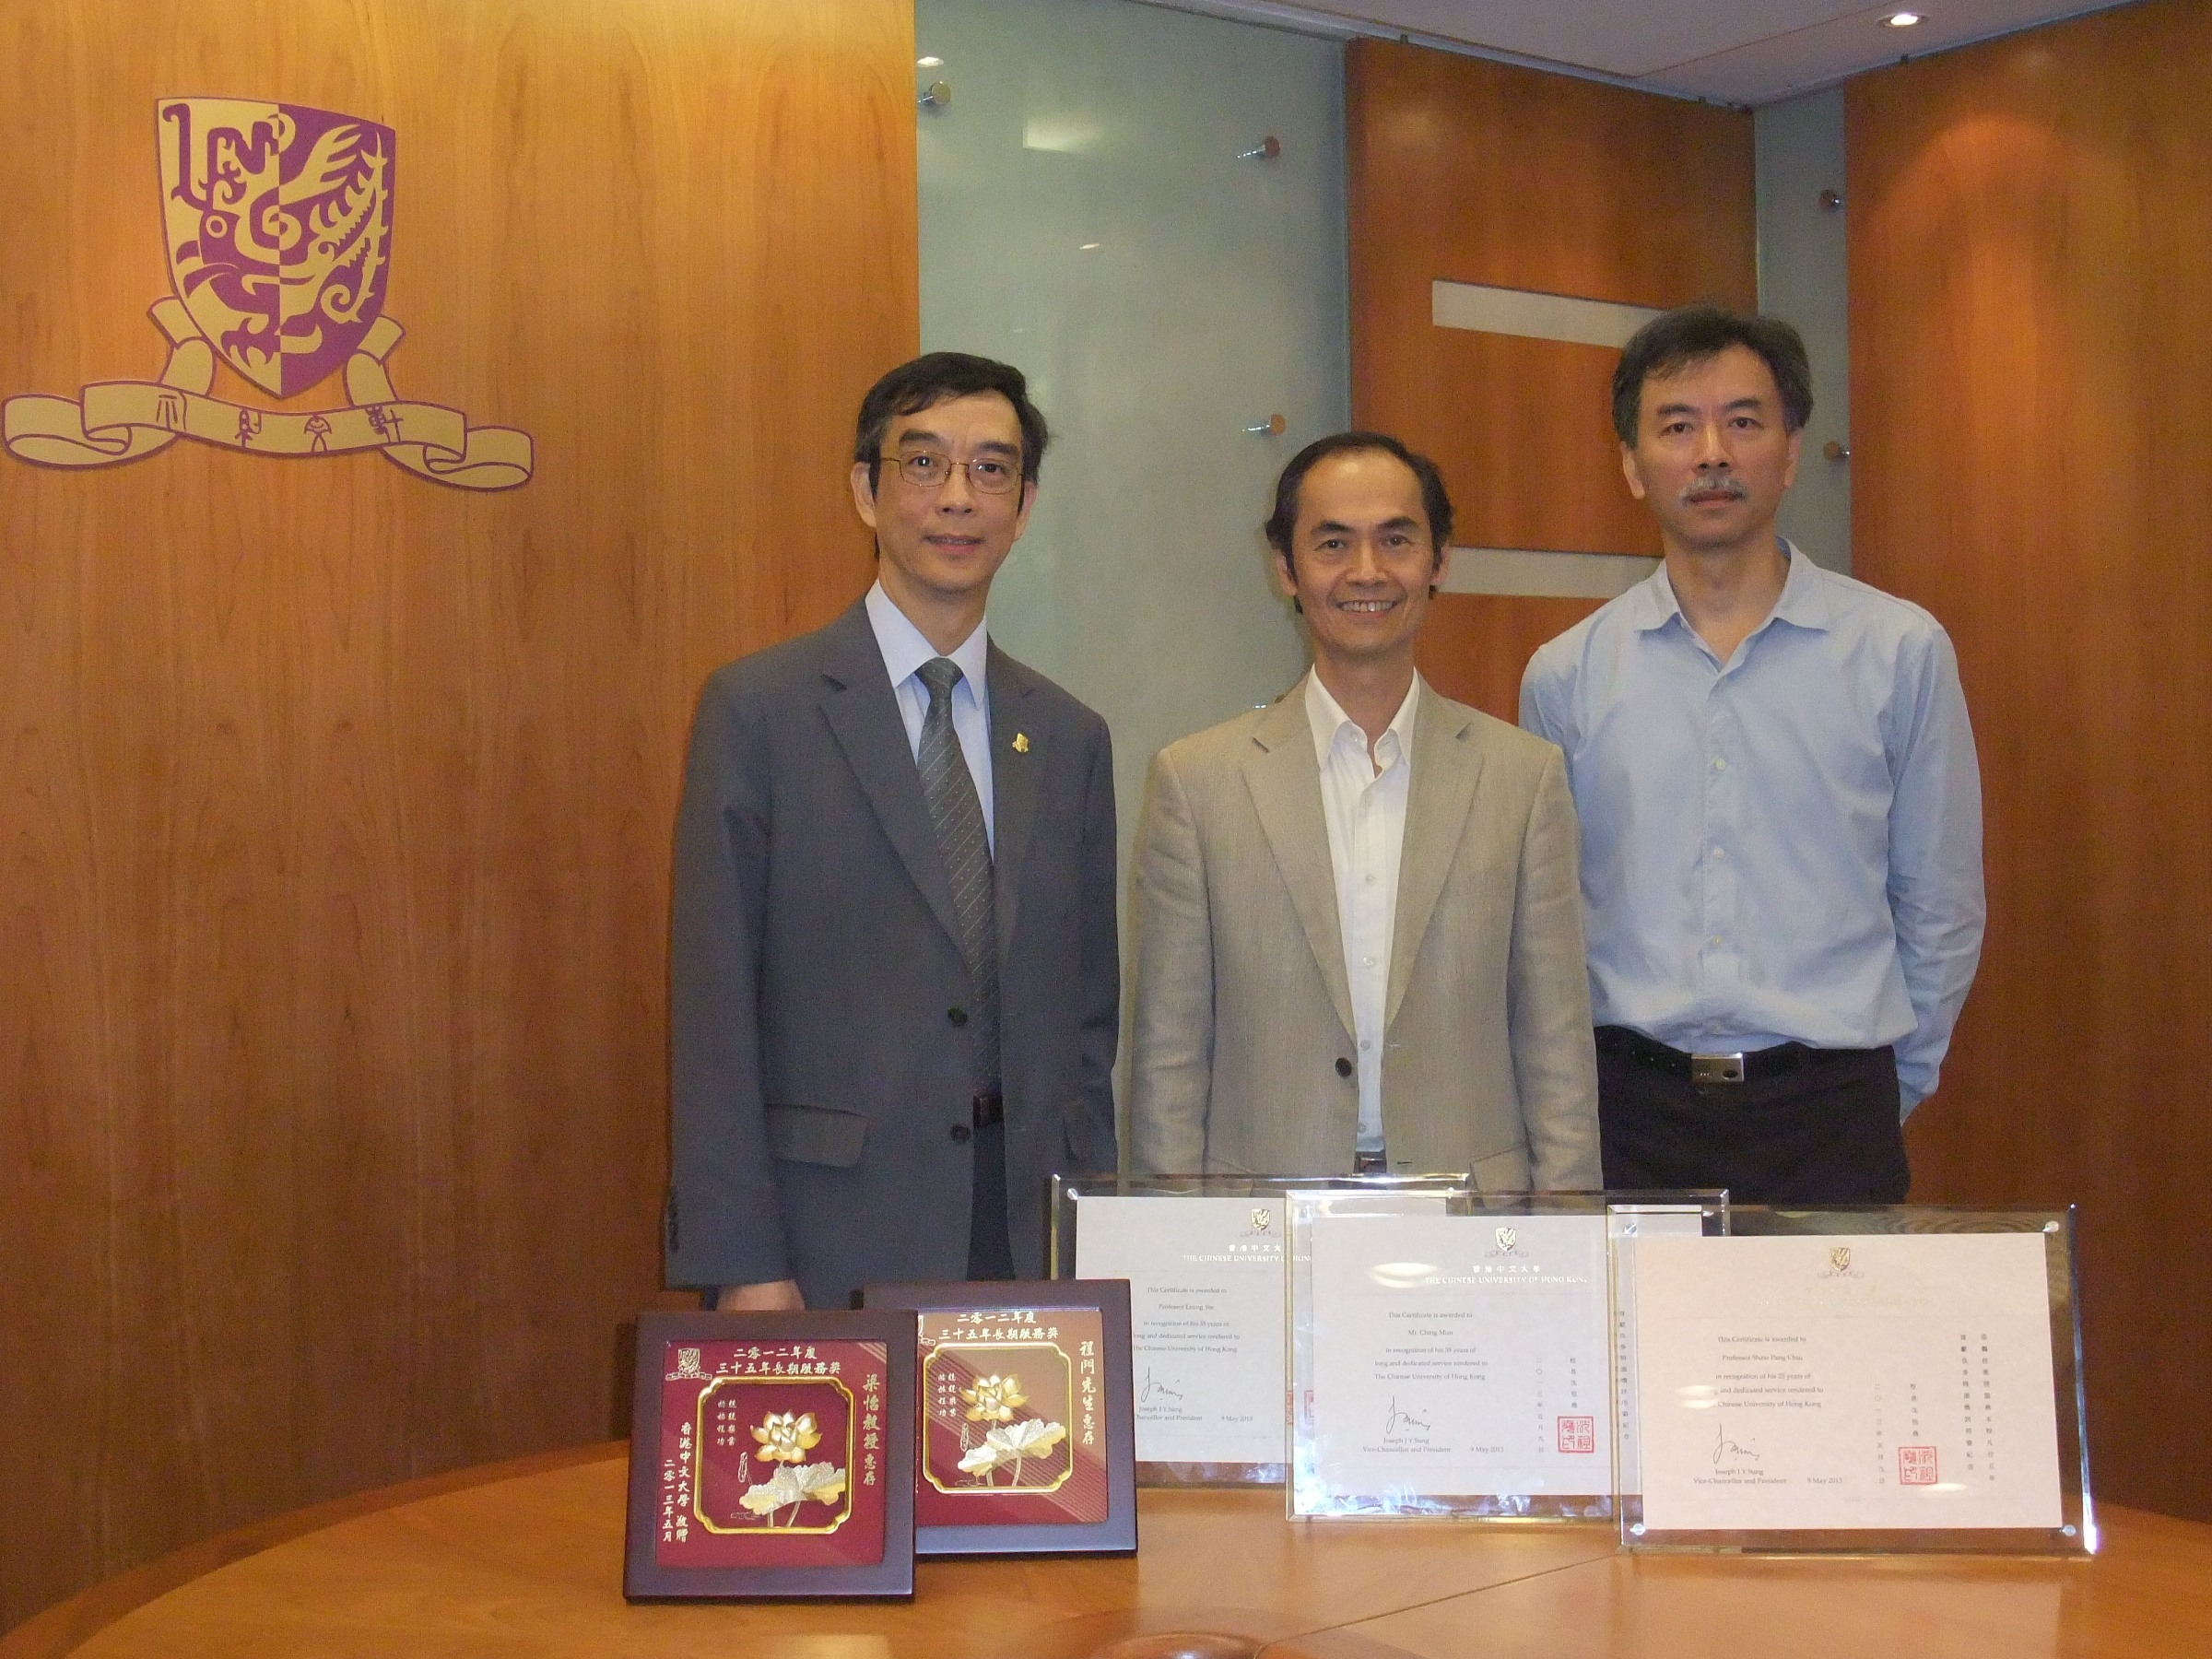 (From left) Prof. Shaw Pang-chui, Professor, School of Life Sciences; Prof. Leung Yee, Research Professor, Department of Geography and Resource Management; and Mr. Ching Mun, Estate Manager (Building Services Section), Estate Management Office, share unforgettable experience in CUHK.